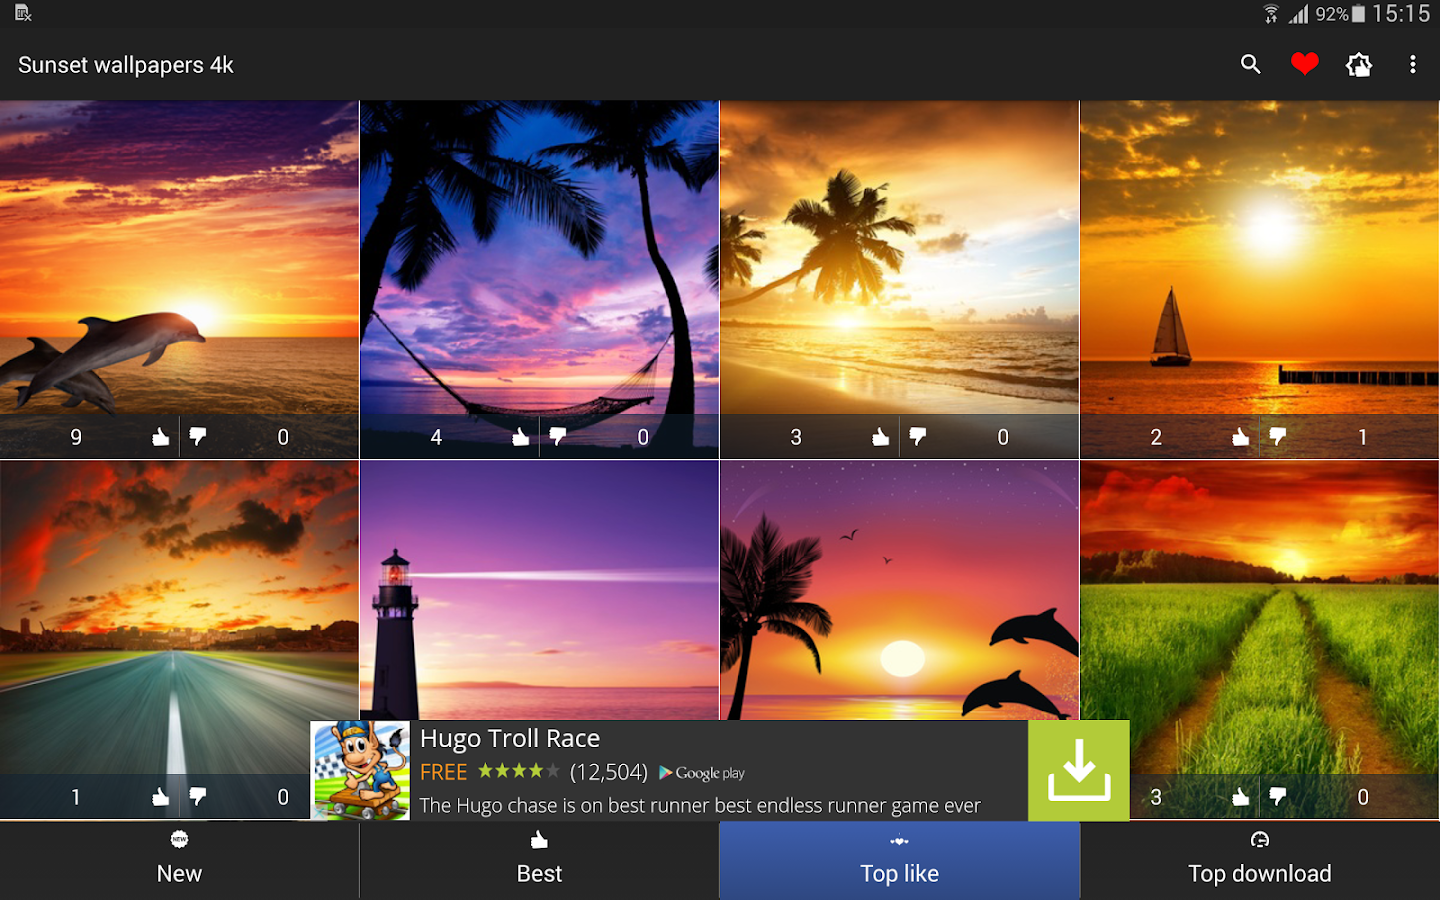 Sunset Wallpapers 4k  Android Apps on Google Play